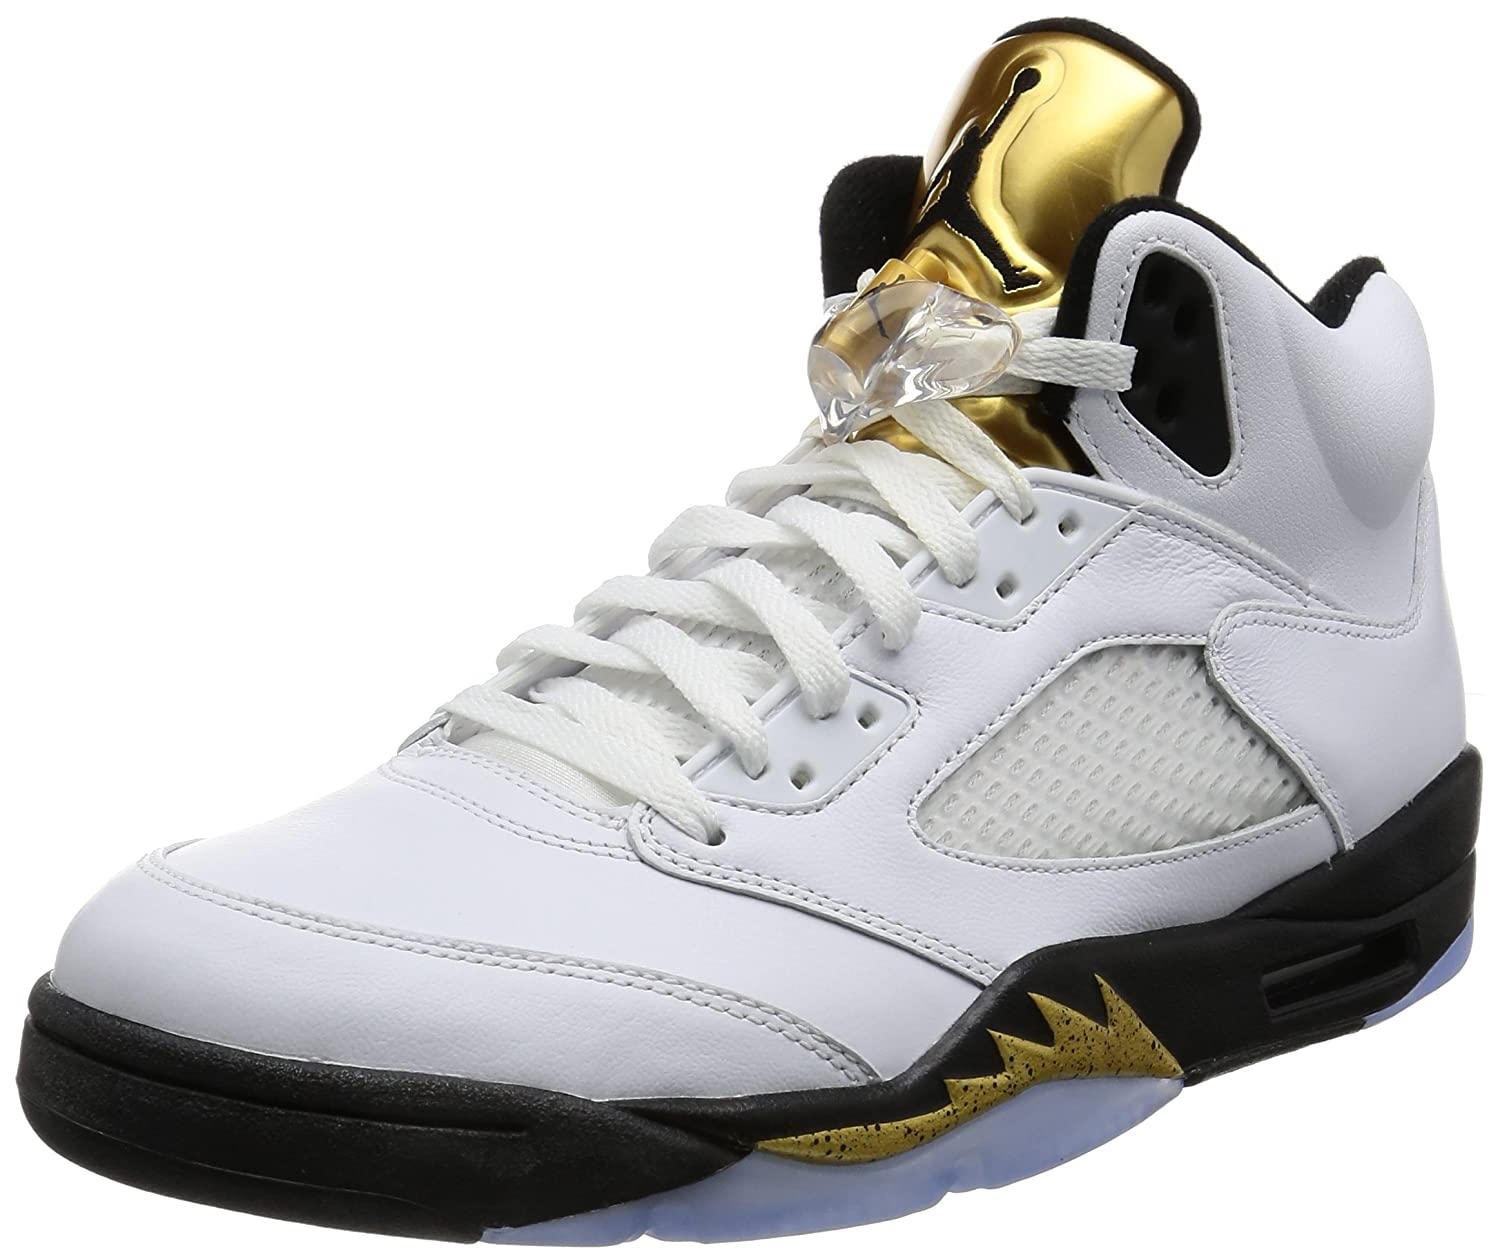 size 40 bfb2d 0b396 Amazon.com   NIKE Mens Air Jordan 5 Retro Olympic White Black-Metallic Gold  Leather Size 14   Basketball